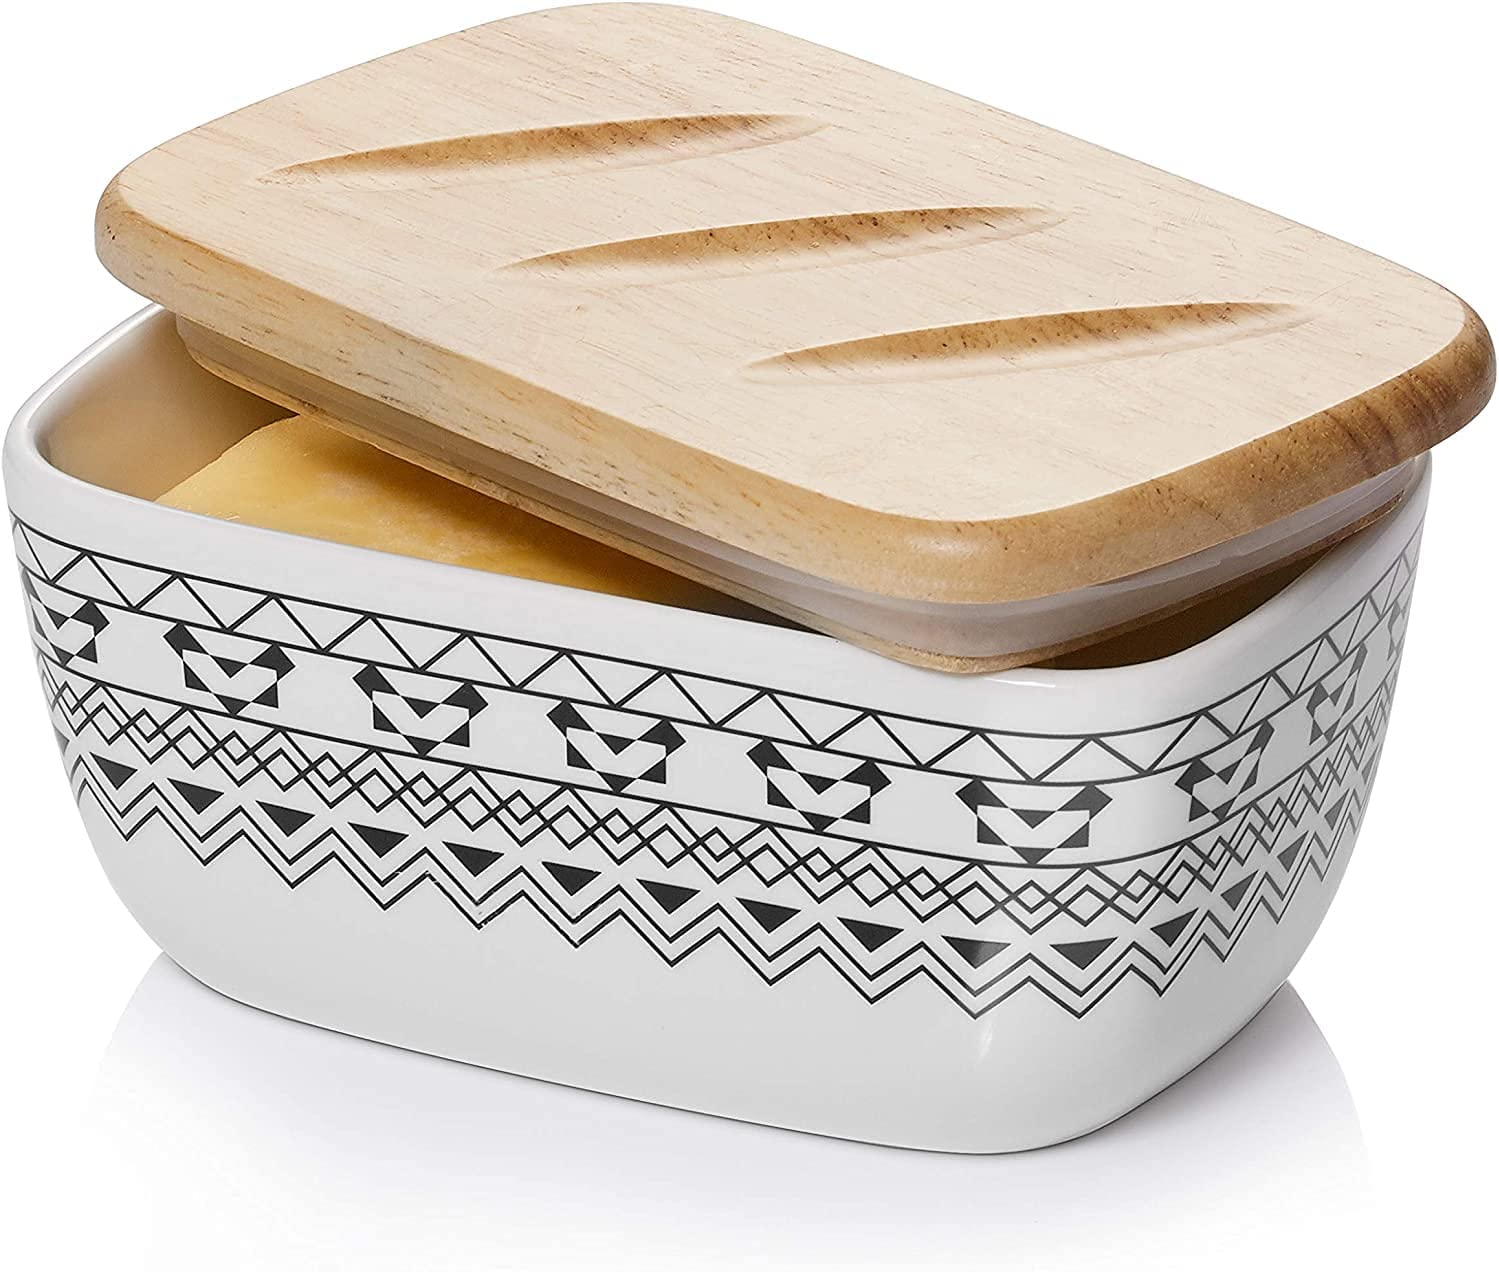 DOWAN Butter Dish Ranking TOP12 Max 41% OFF with Holder Covered Lid Ceramic